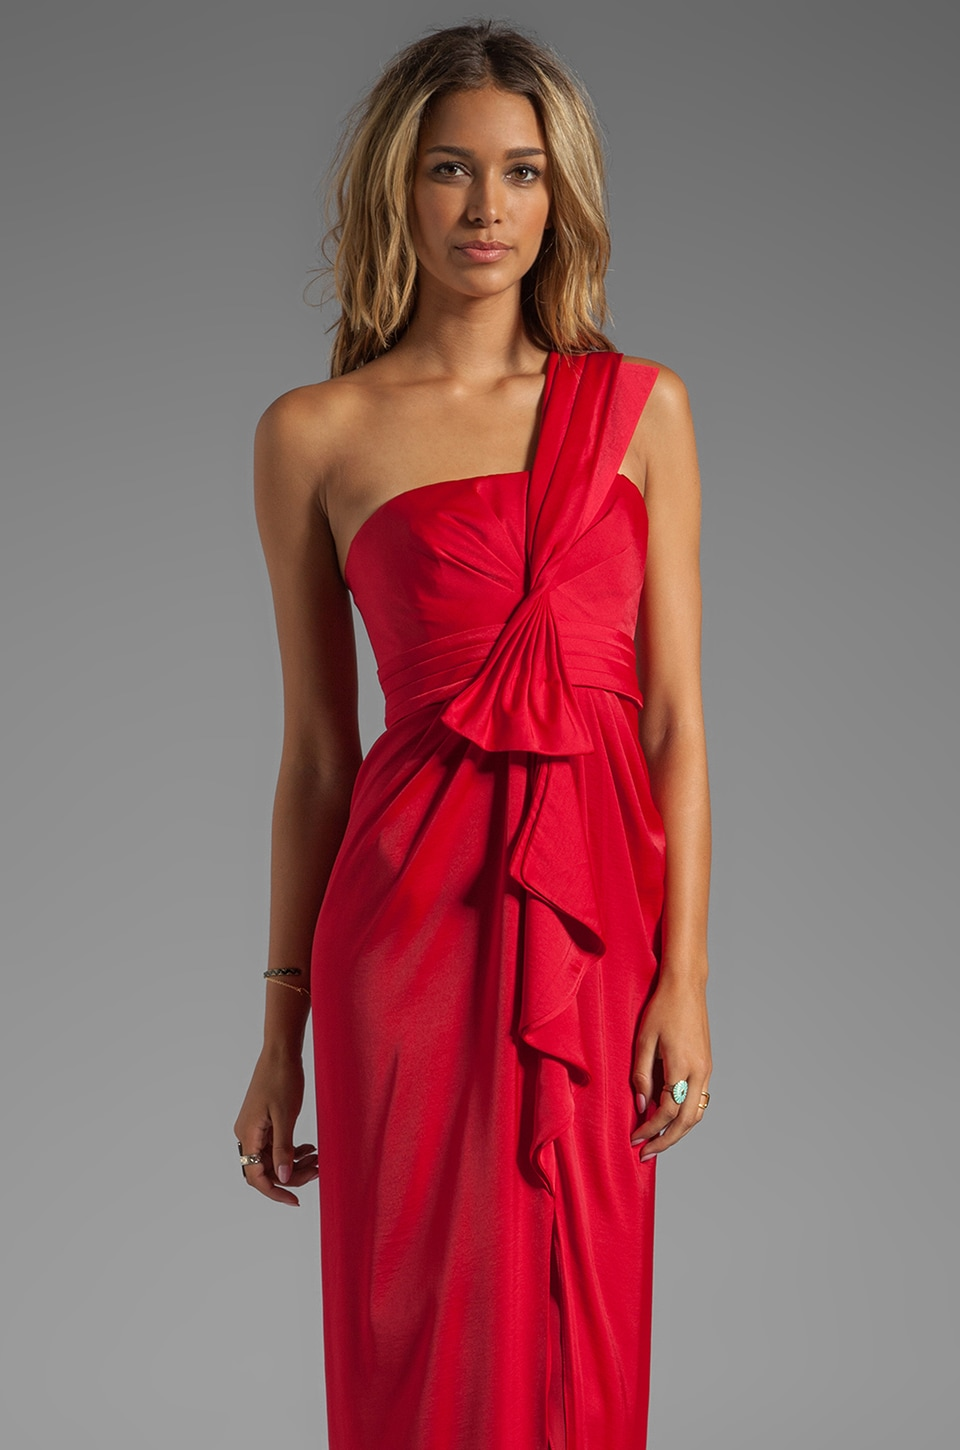 BCBGMAXAZRIA Barbara One Shoulder Gown in New Red